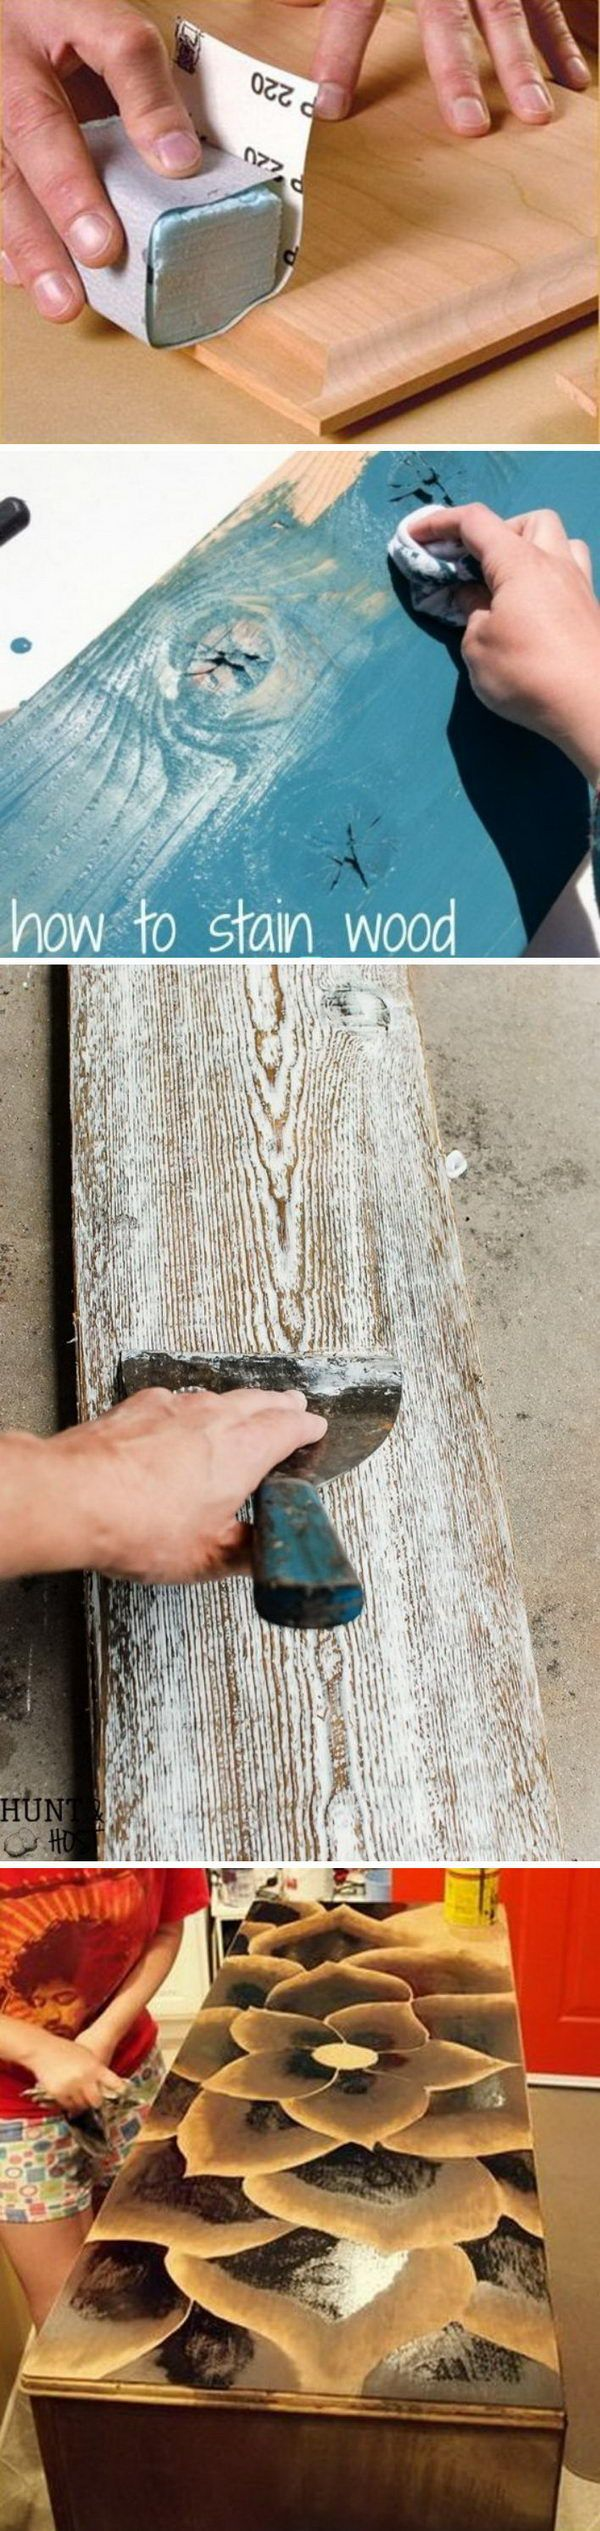 DIY Ideas & Tutorials for Using Wood Stains.